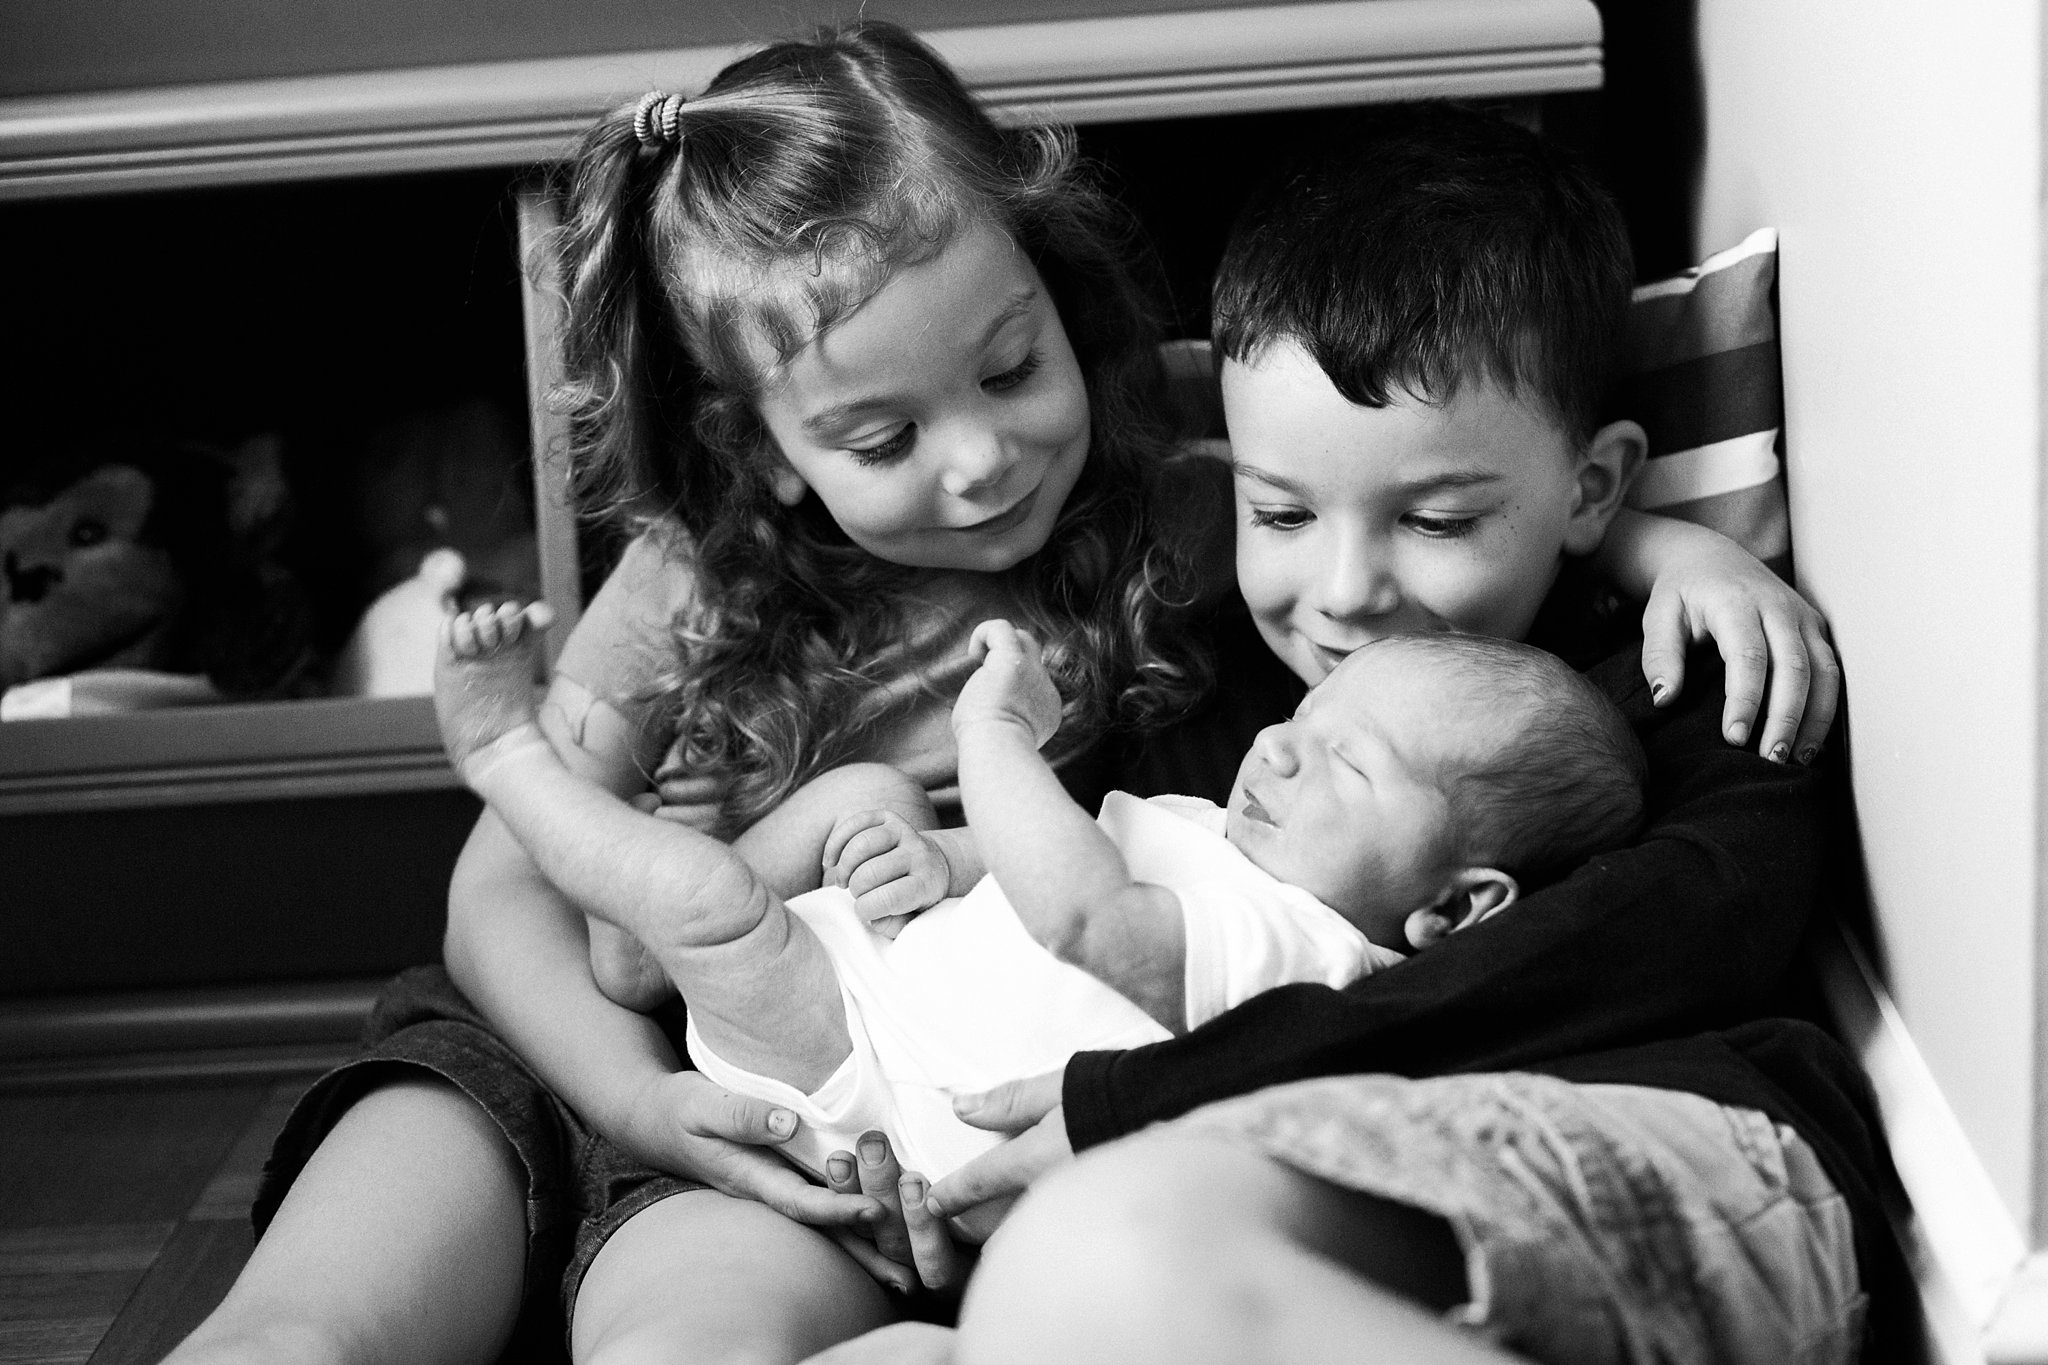 photos of older siblings with new baby brother